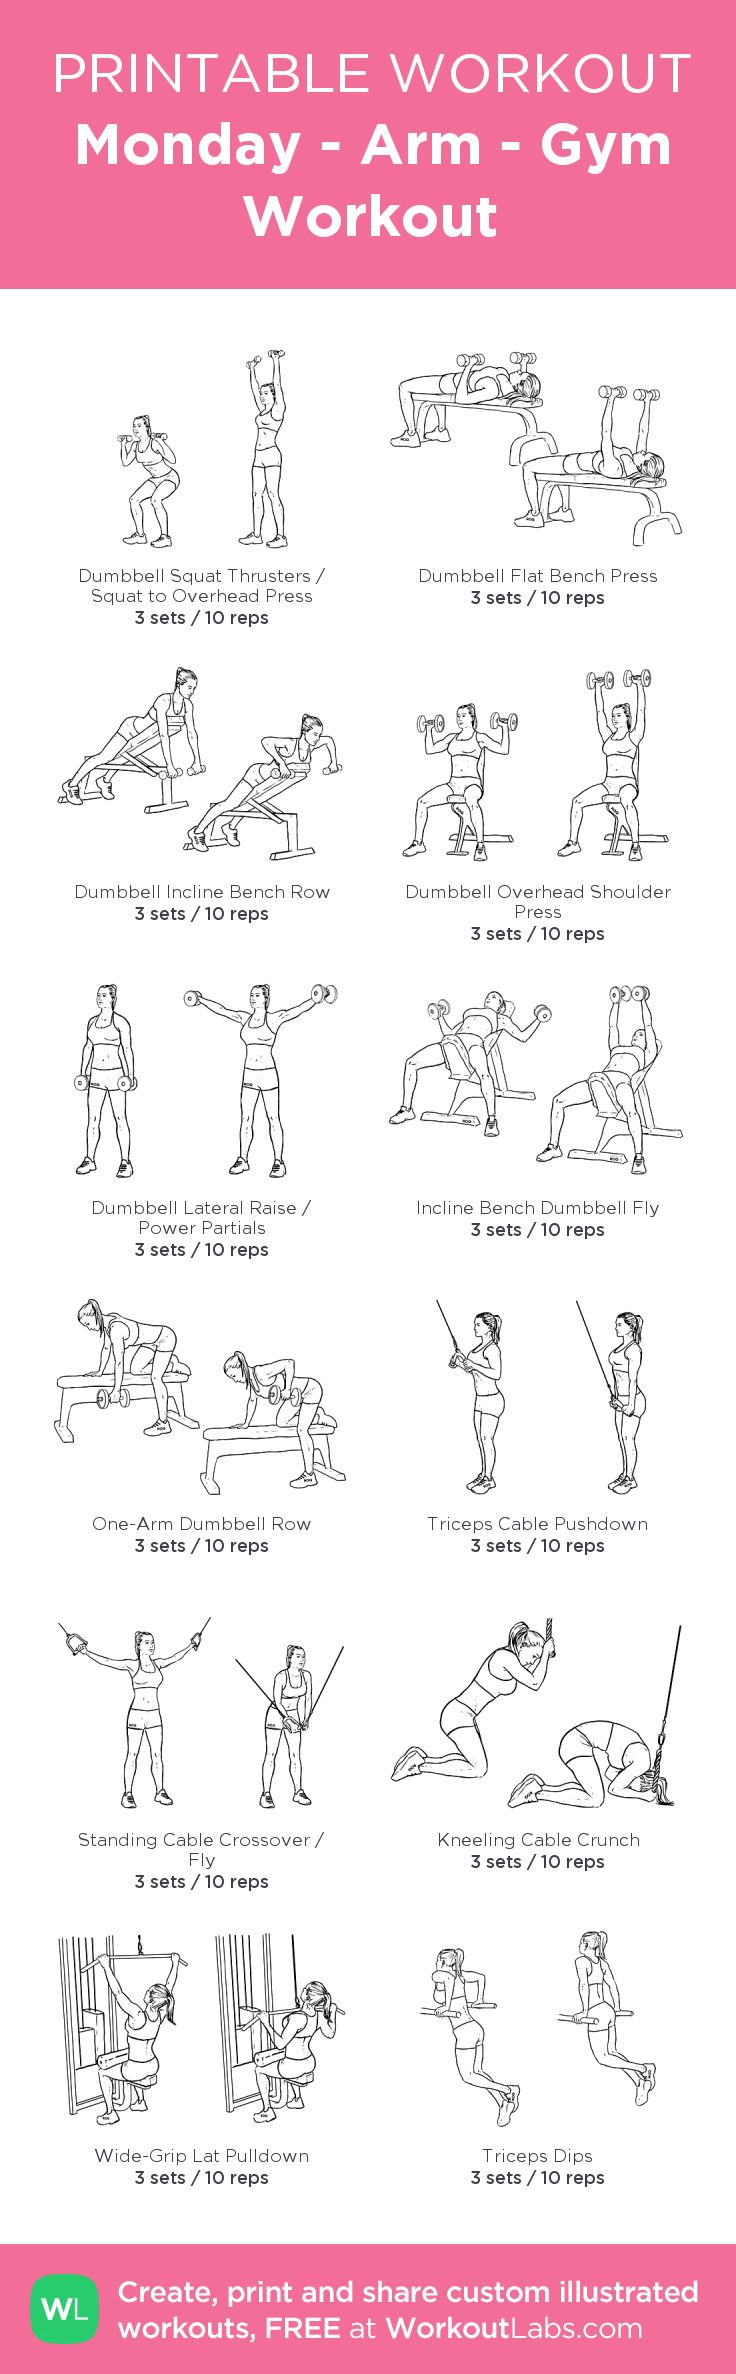 Best 25+ Gym workout plans ideas on Pinterest | Gym workout ...